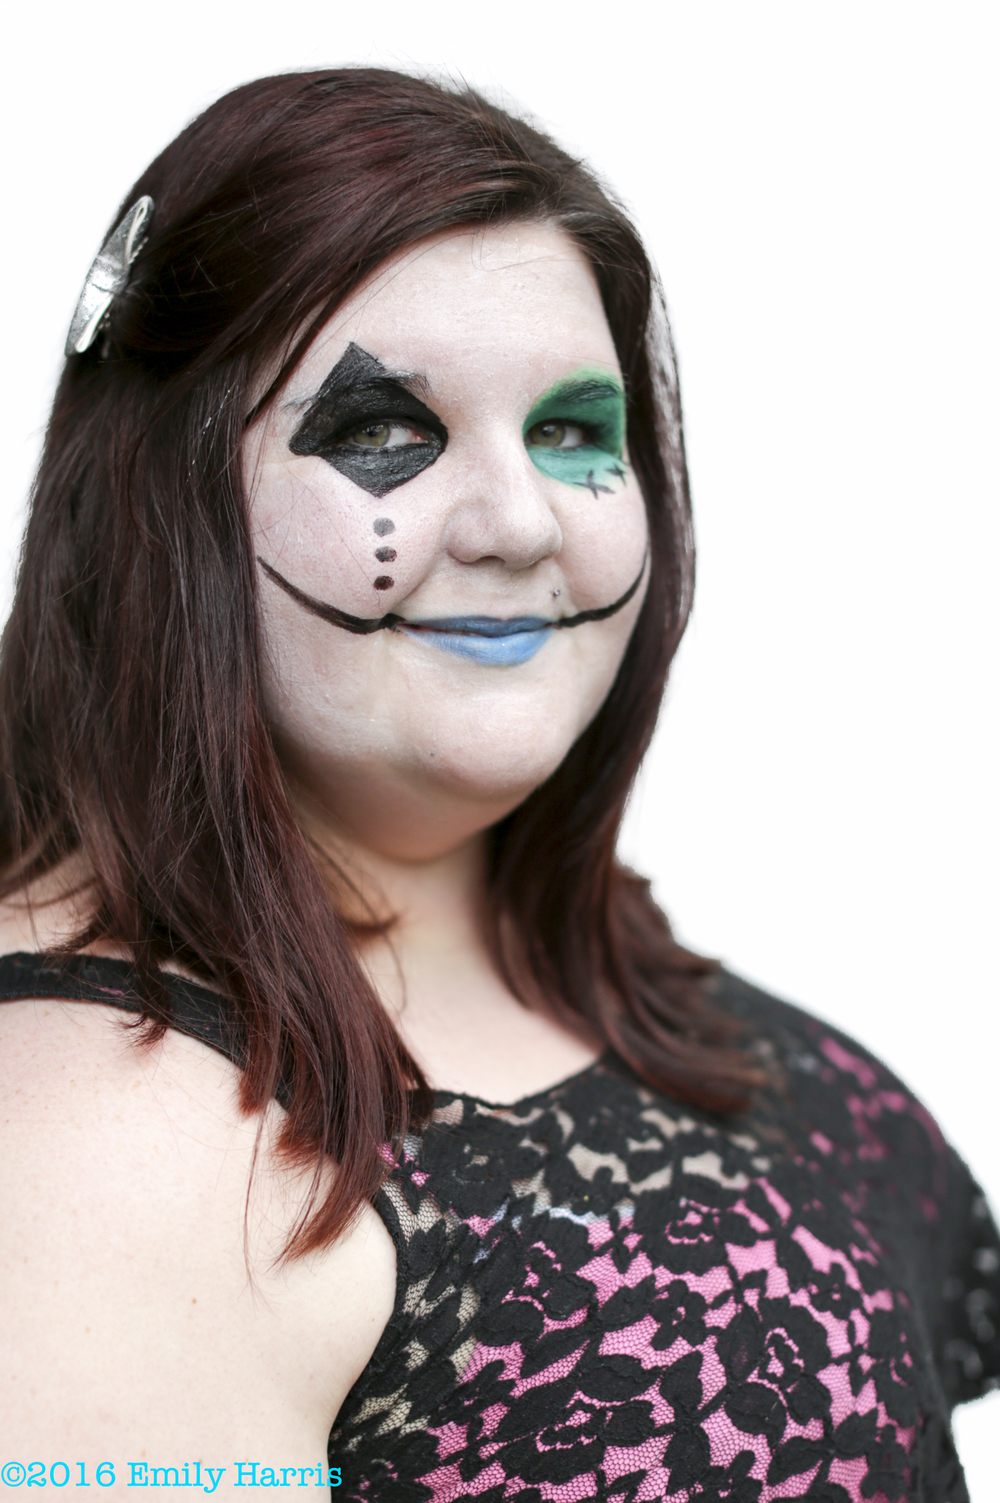 Juggalos_Portraits_Untitled-15.jpg